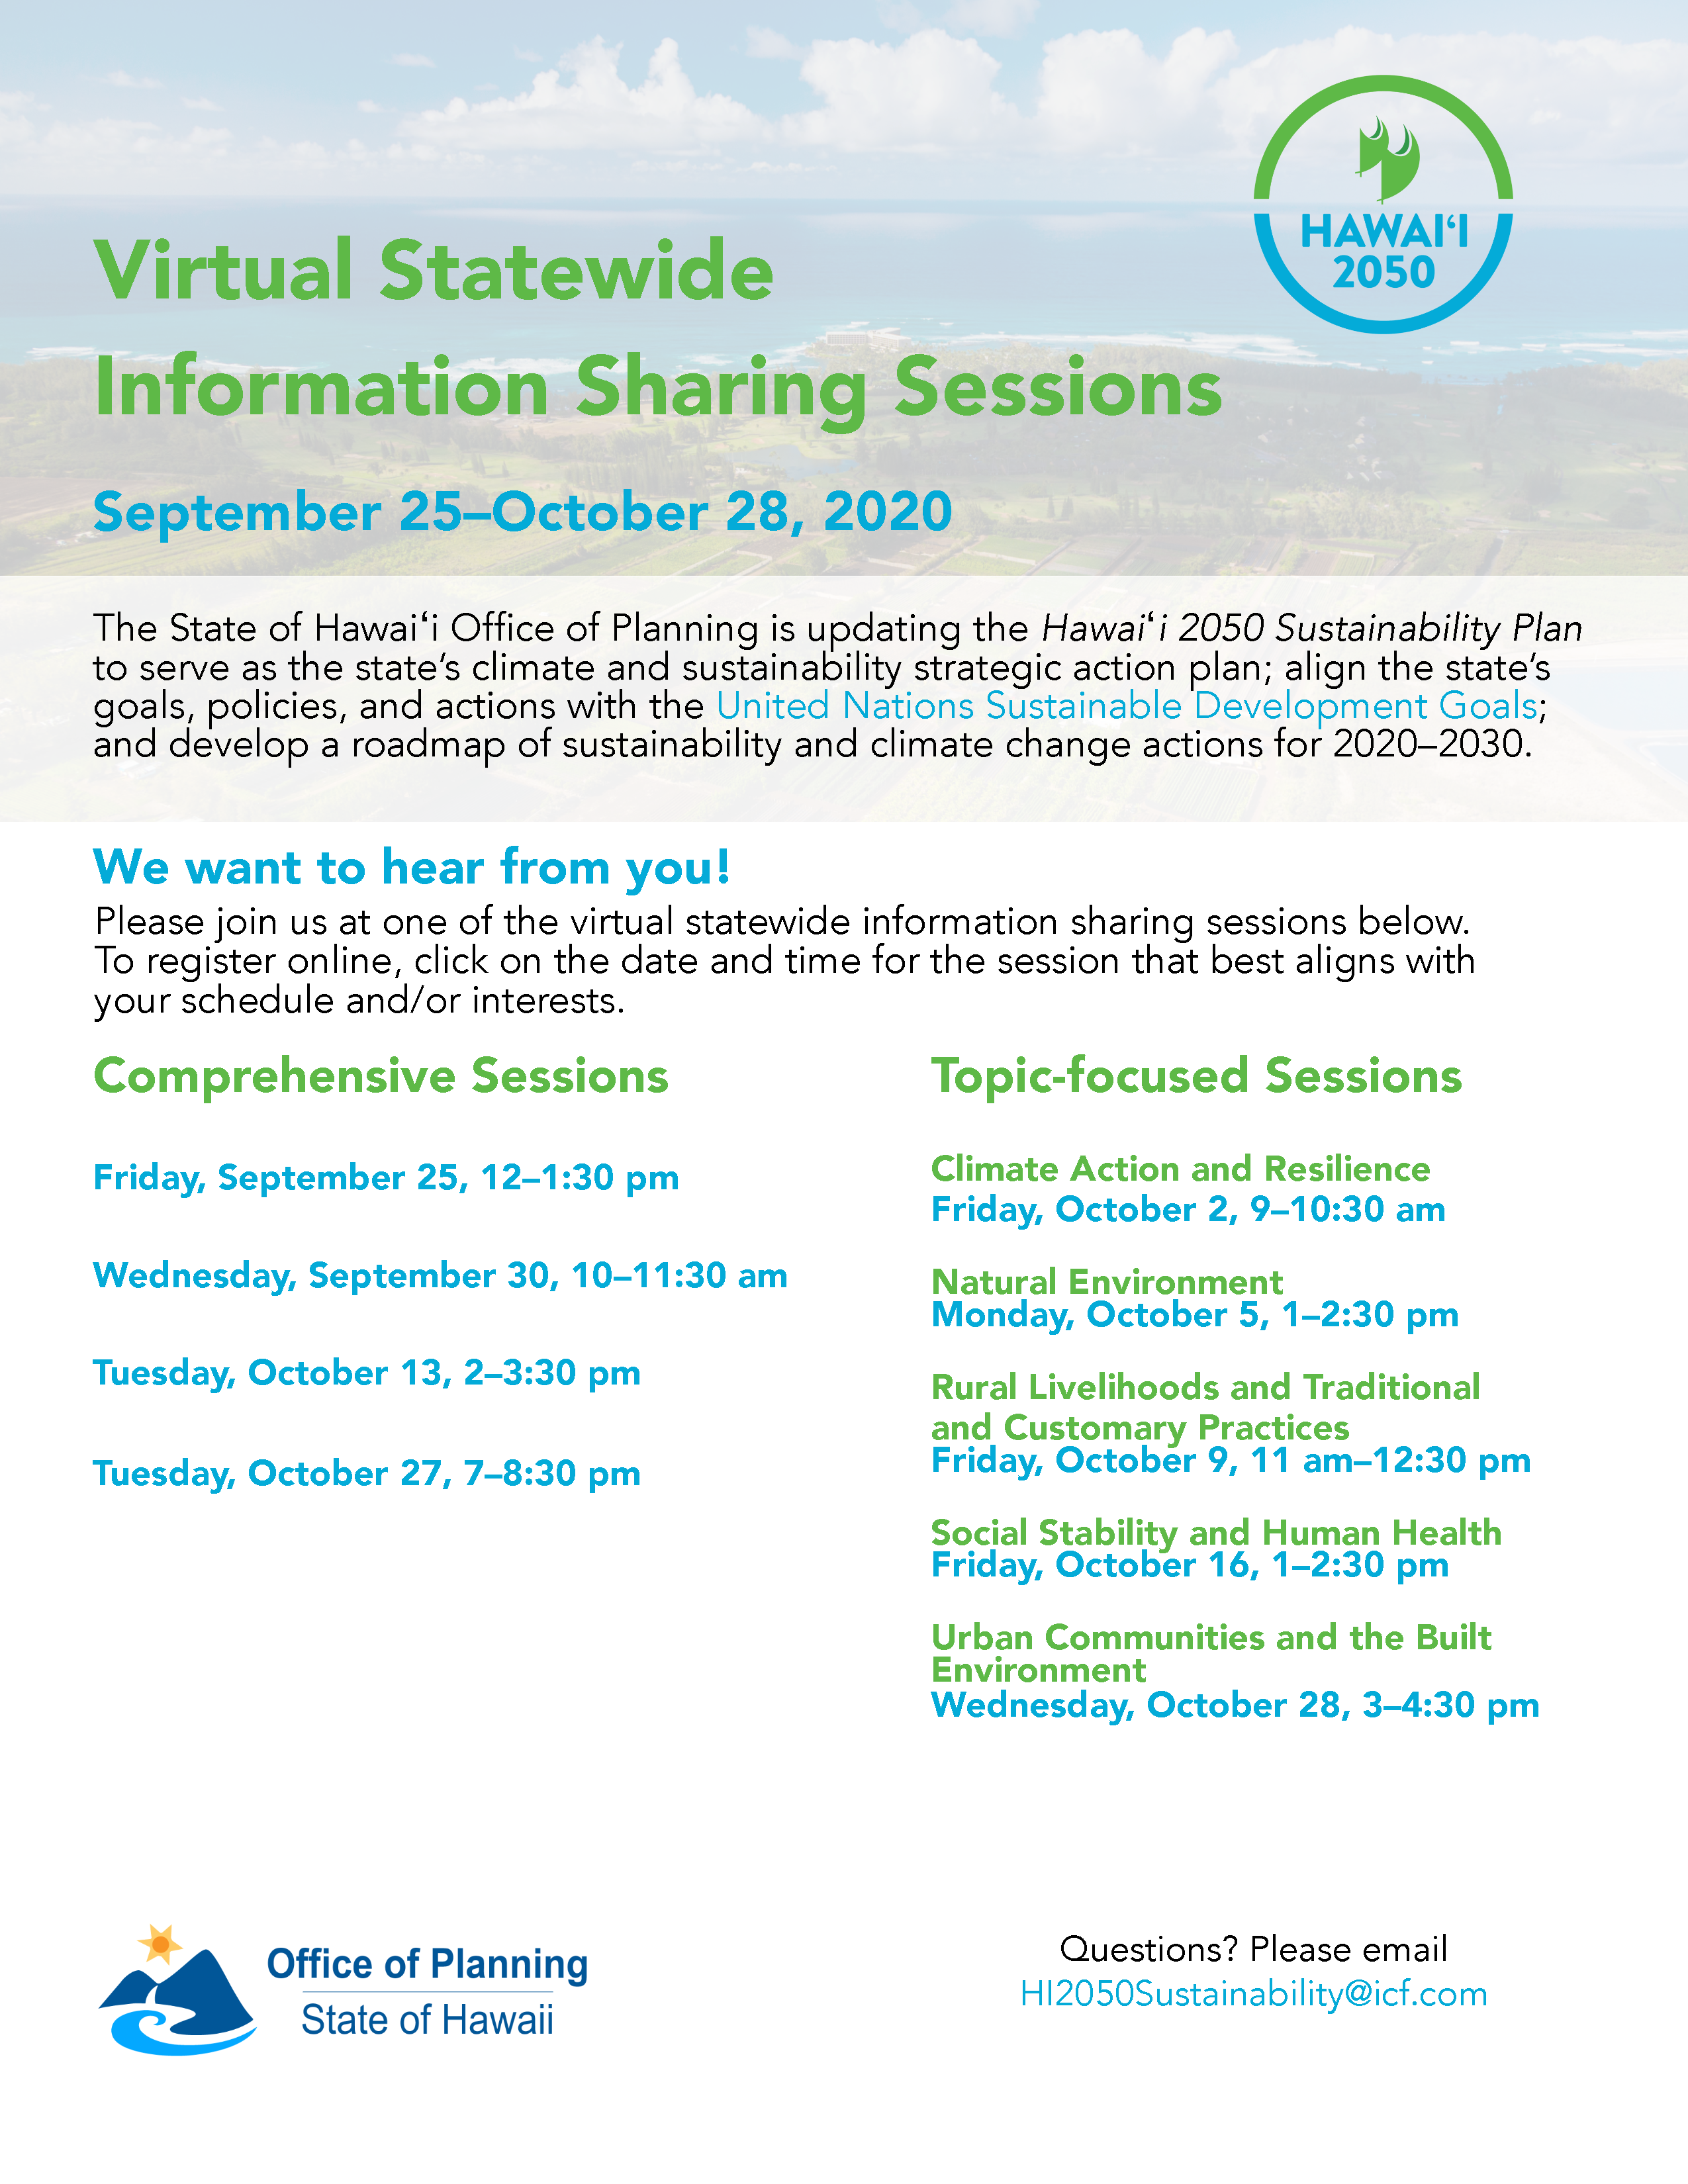 Hawaii 2050 Sustainability Update: Flyer about Information Sessions